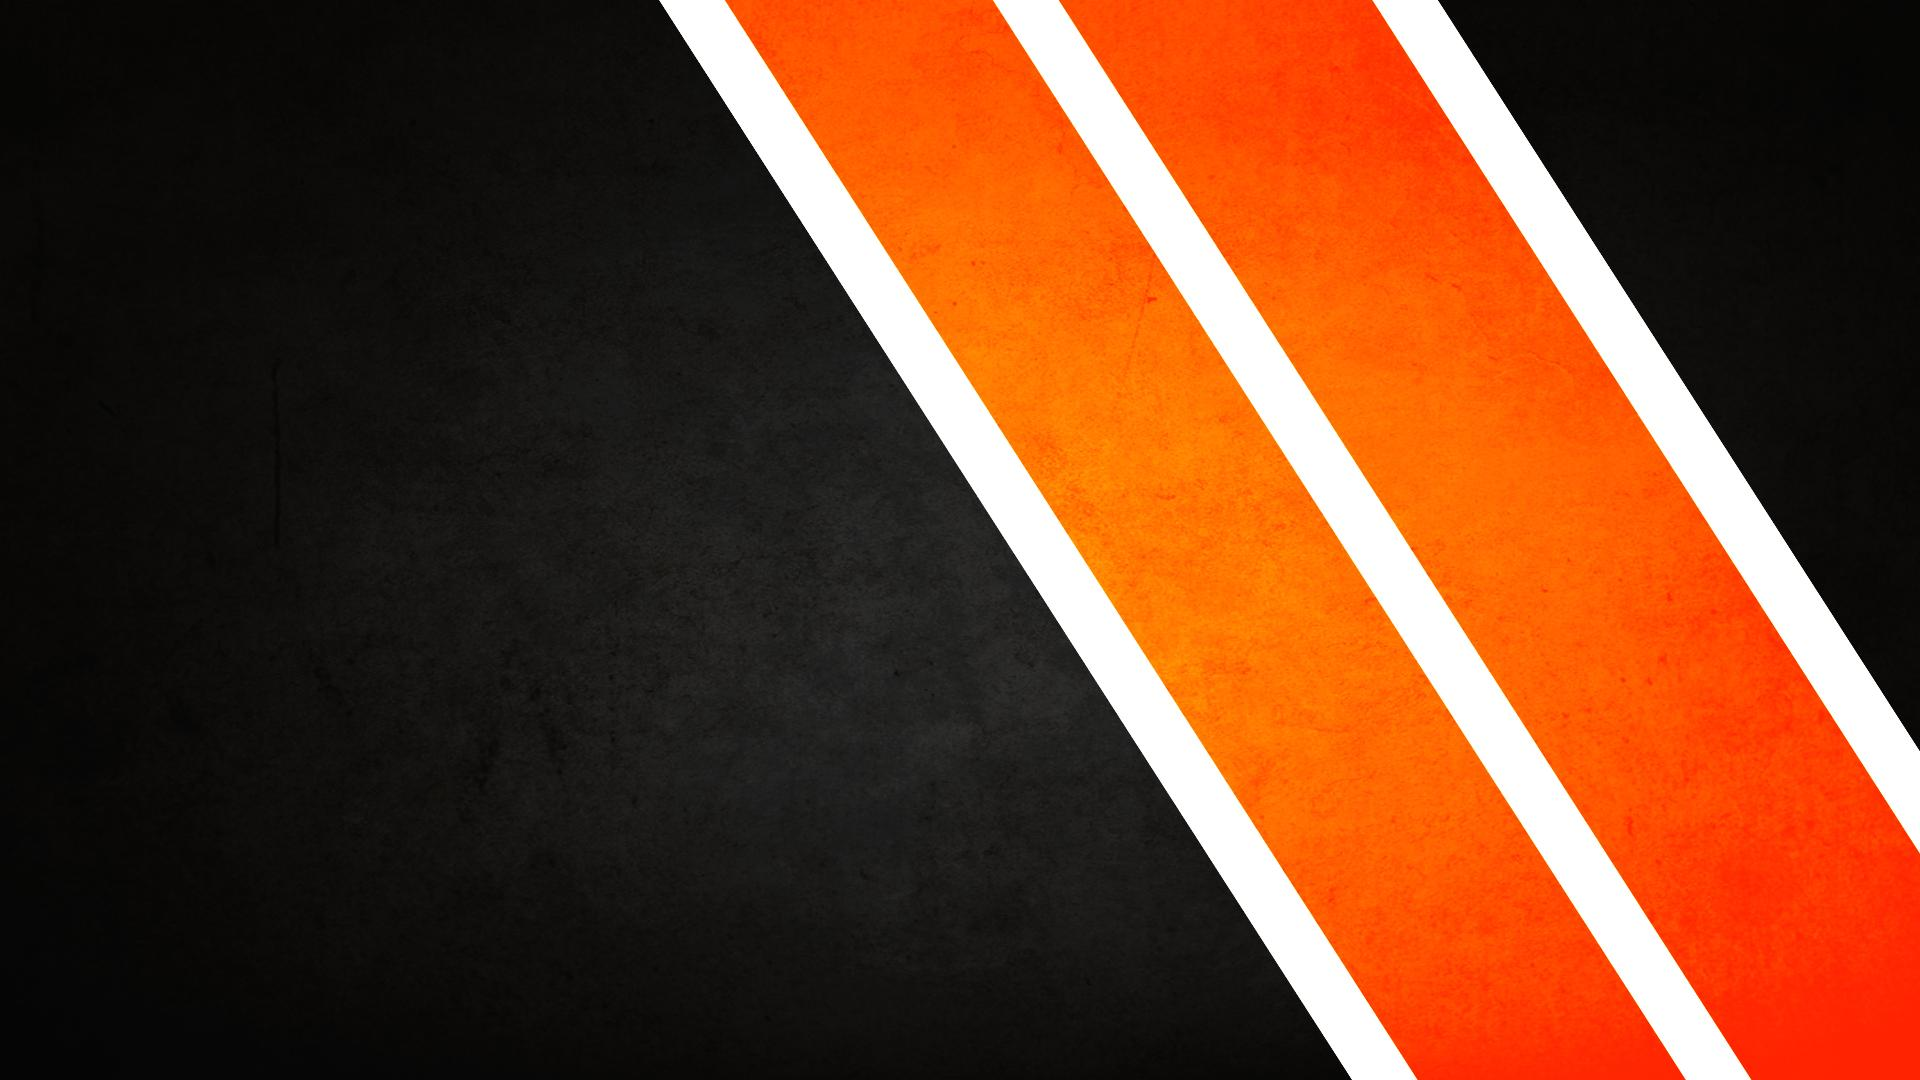 Simple orange wallpaper   Imgur 1920x1080